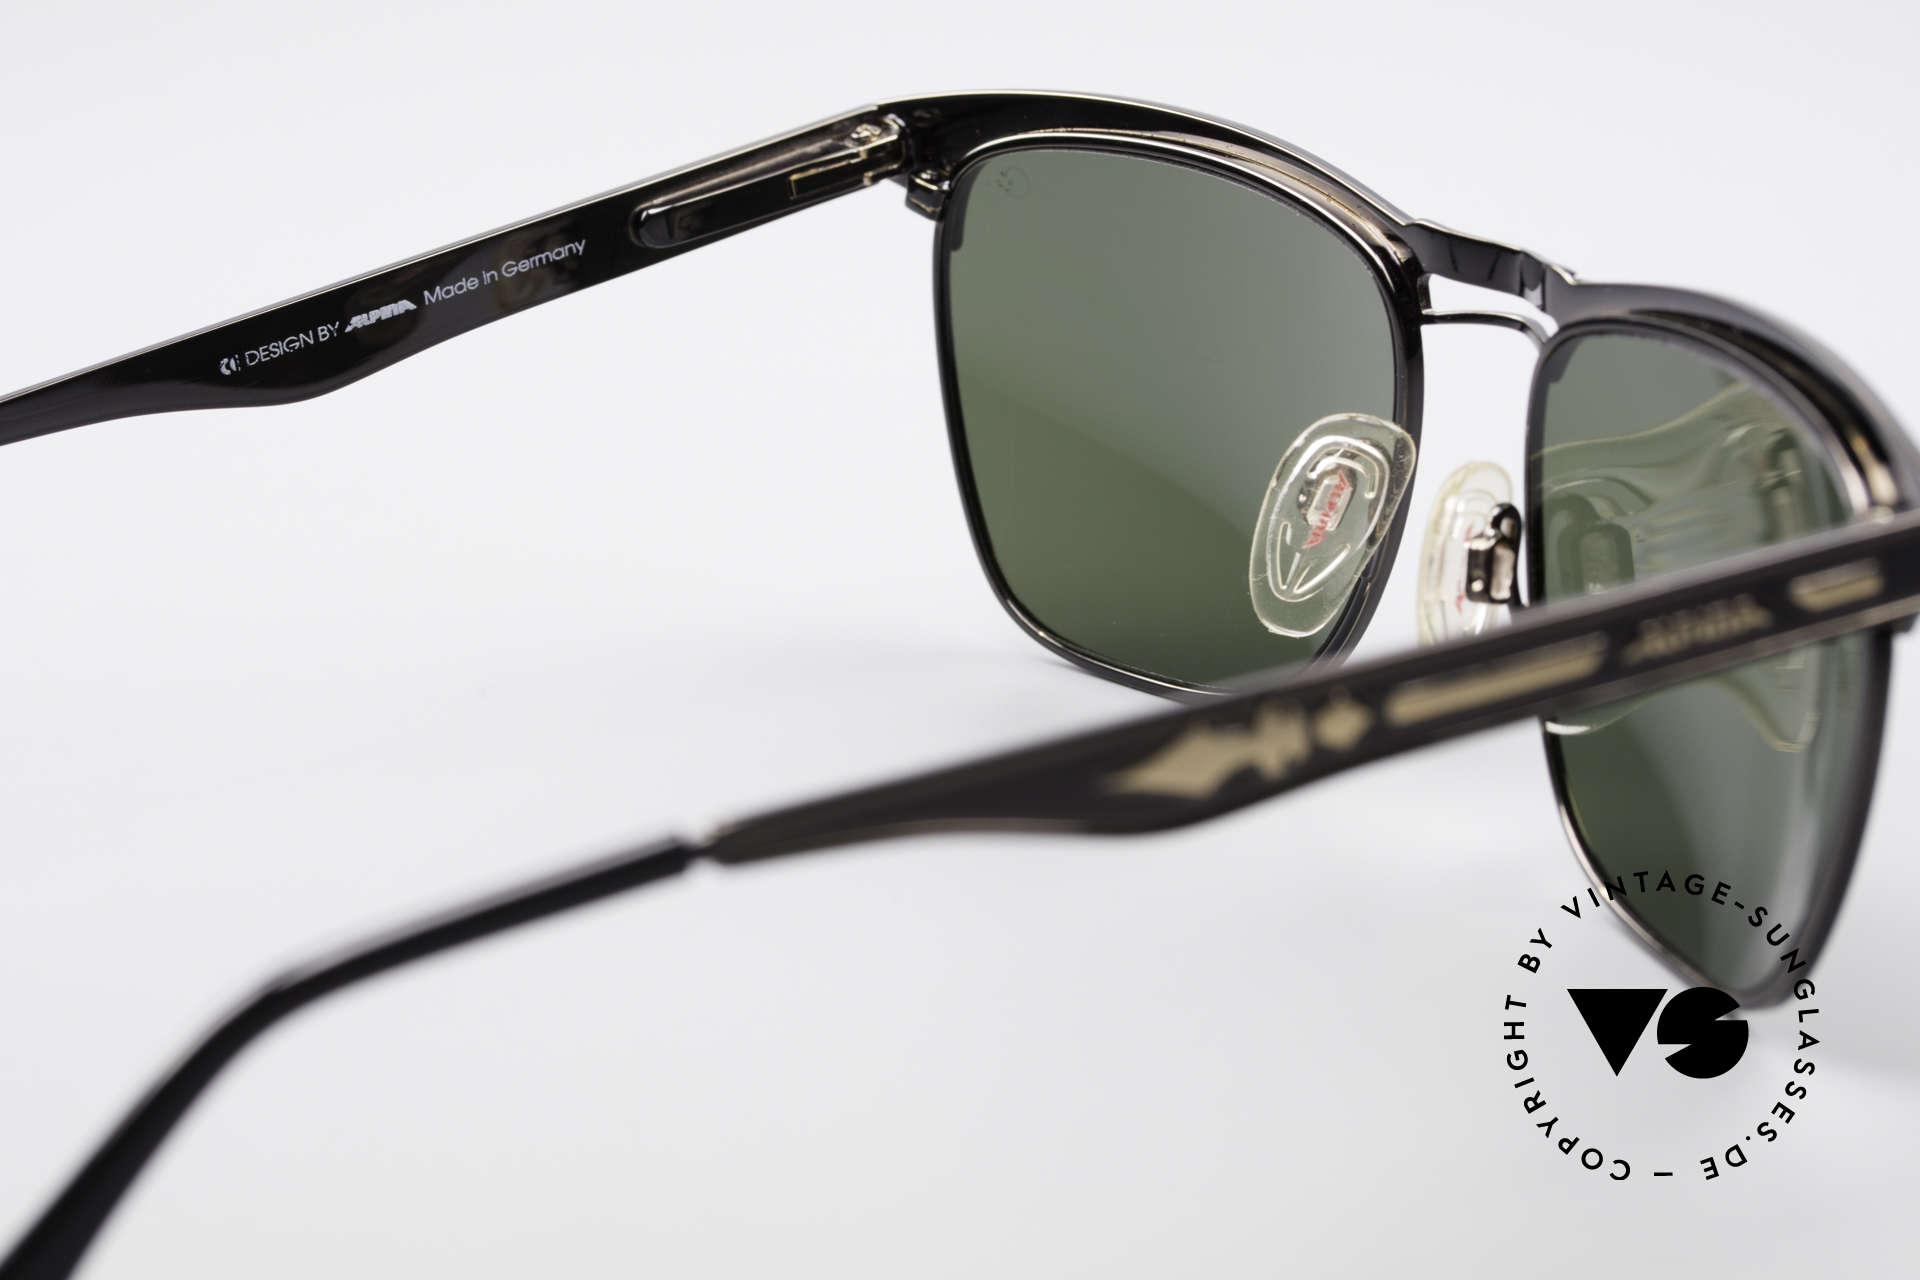 Alpina THE SPEARHEAD No Retro Sunglasses 1990's, a timeless classic by Alpina (100% UV protection), Made for Men and Women